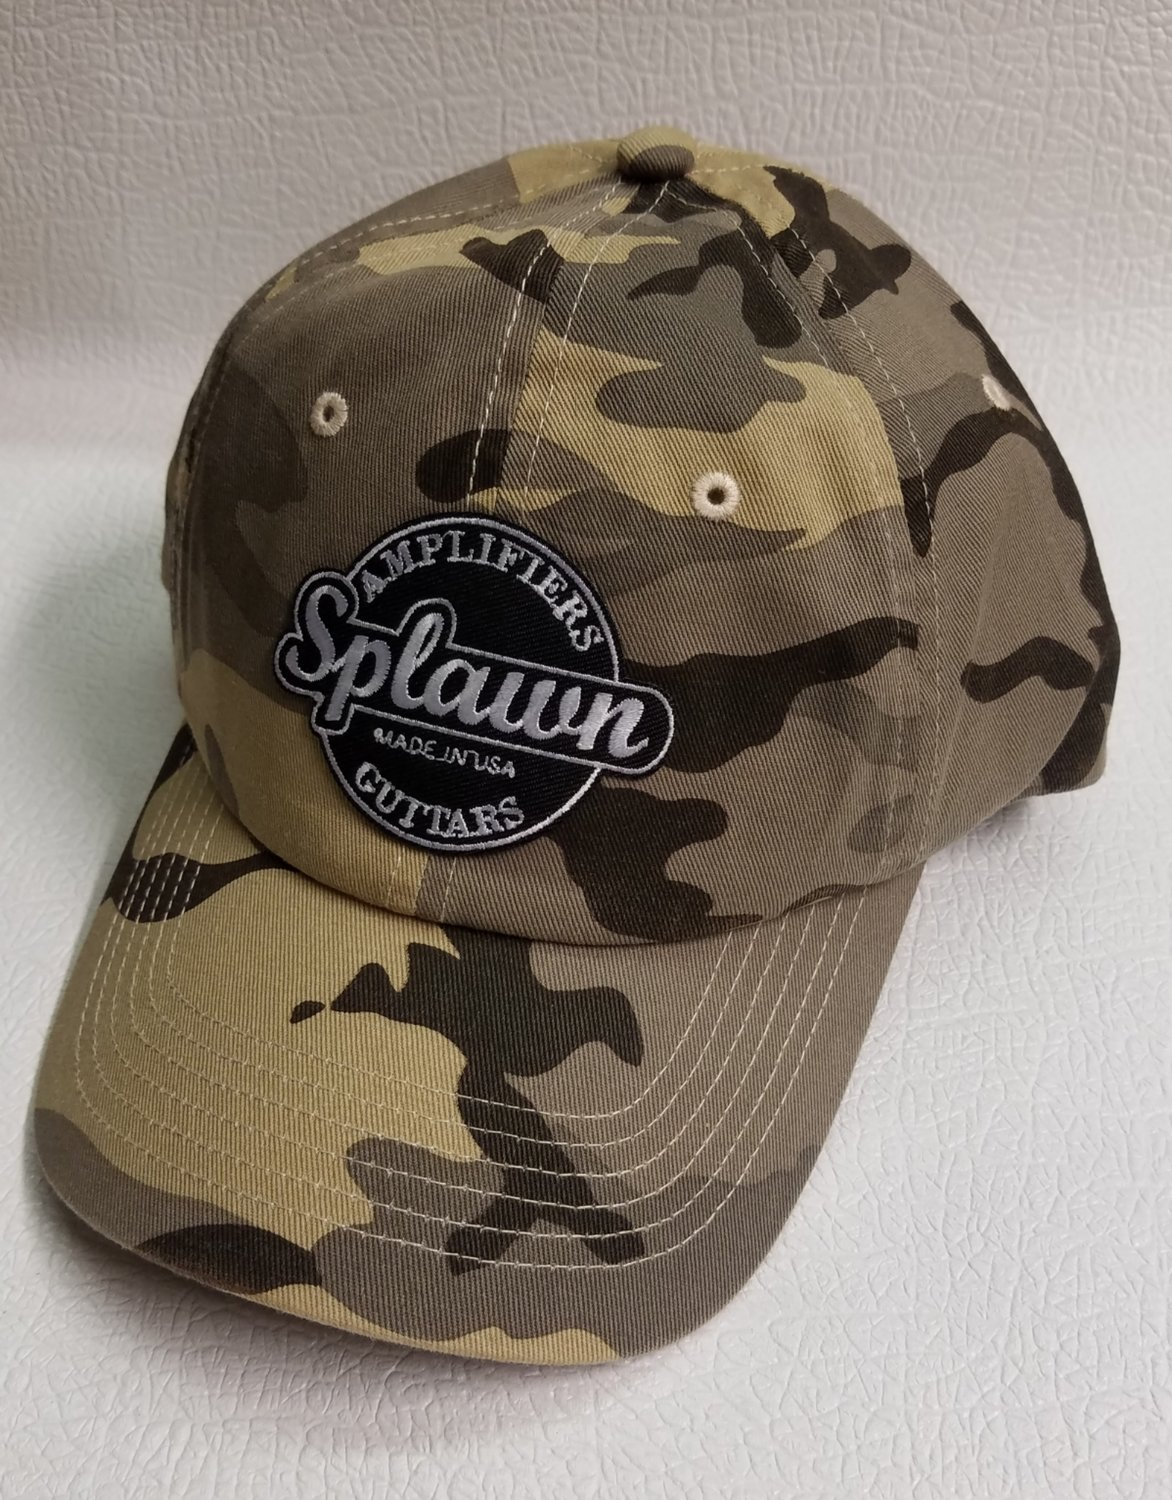 Splawn Amplification Guitars Center Logo Port Authority Cap Desert Camo